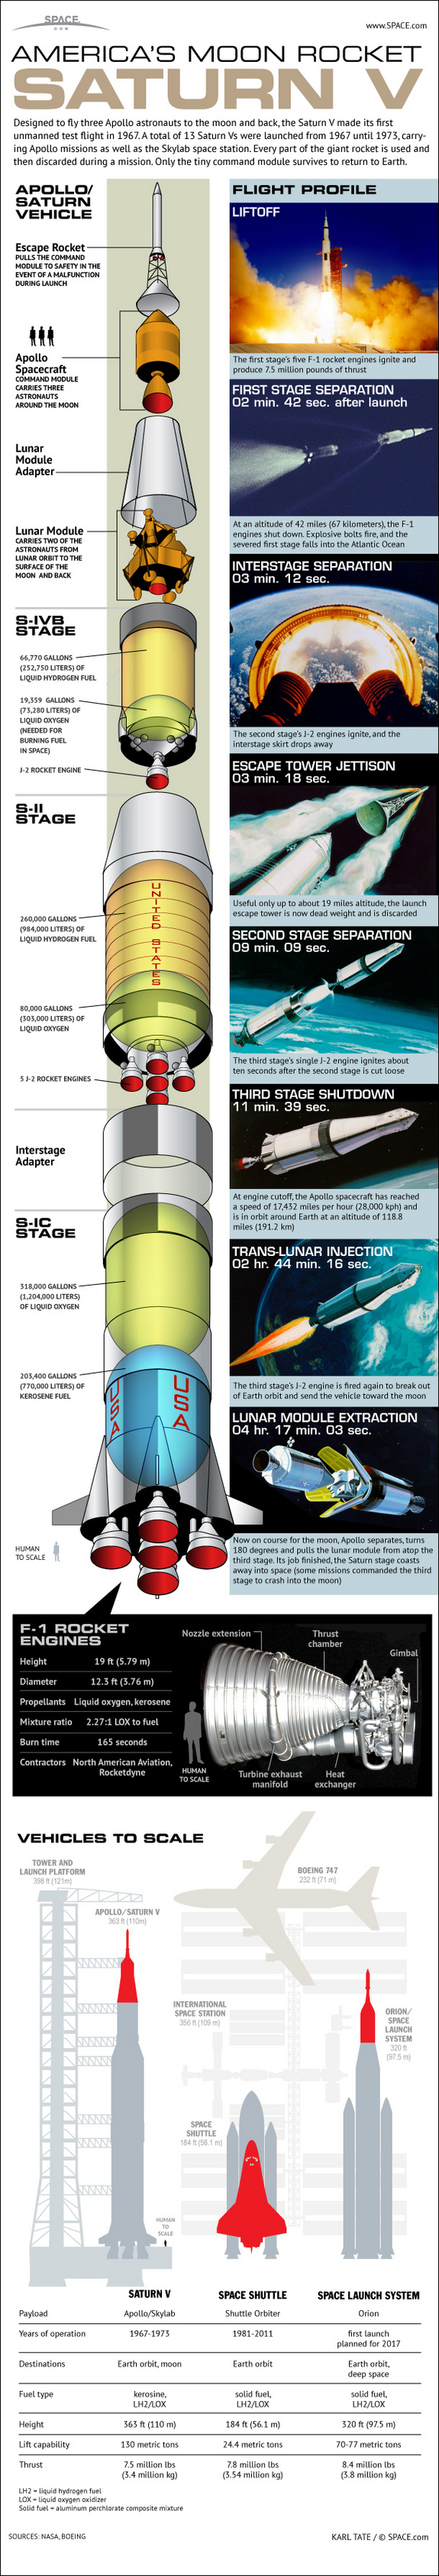 Learn about the huge Saturn V rocket booster that launched men to the moon, in this SPACE.com infographic.